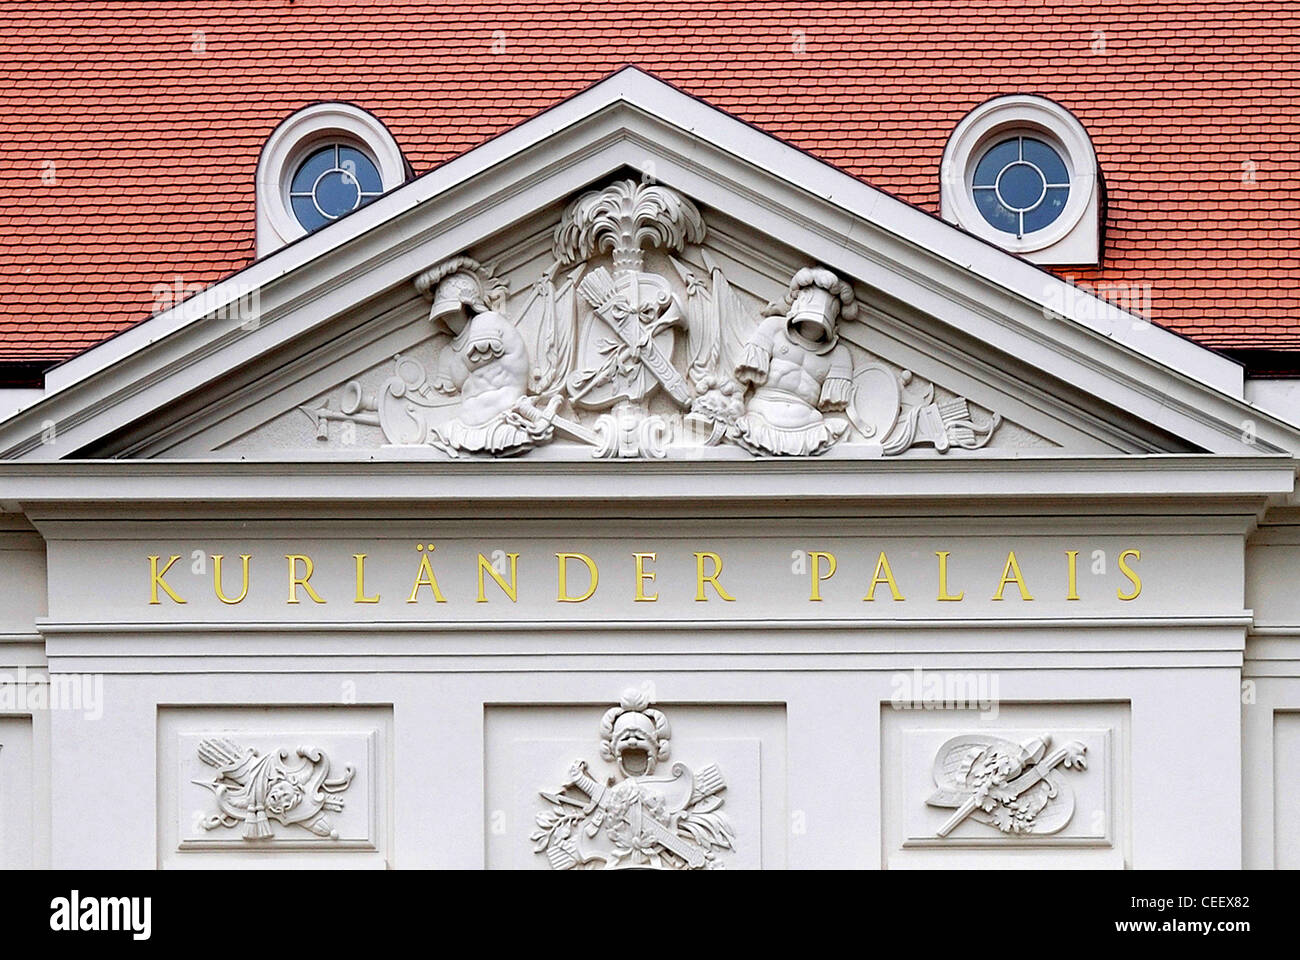 Portal of the historical building Kurlaender Palais in Dresden after the reconstruction. - Stock Image